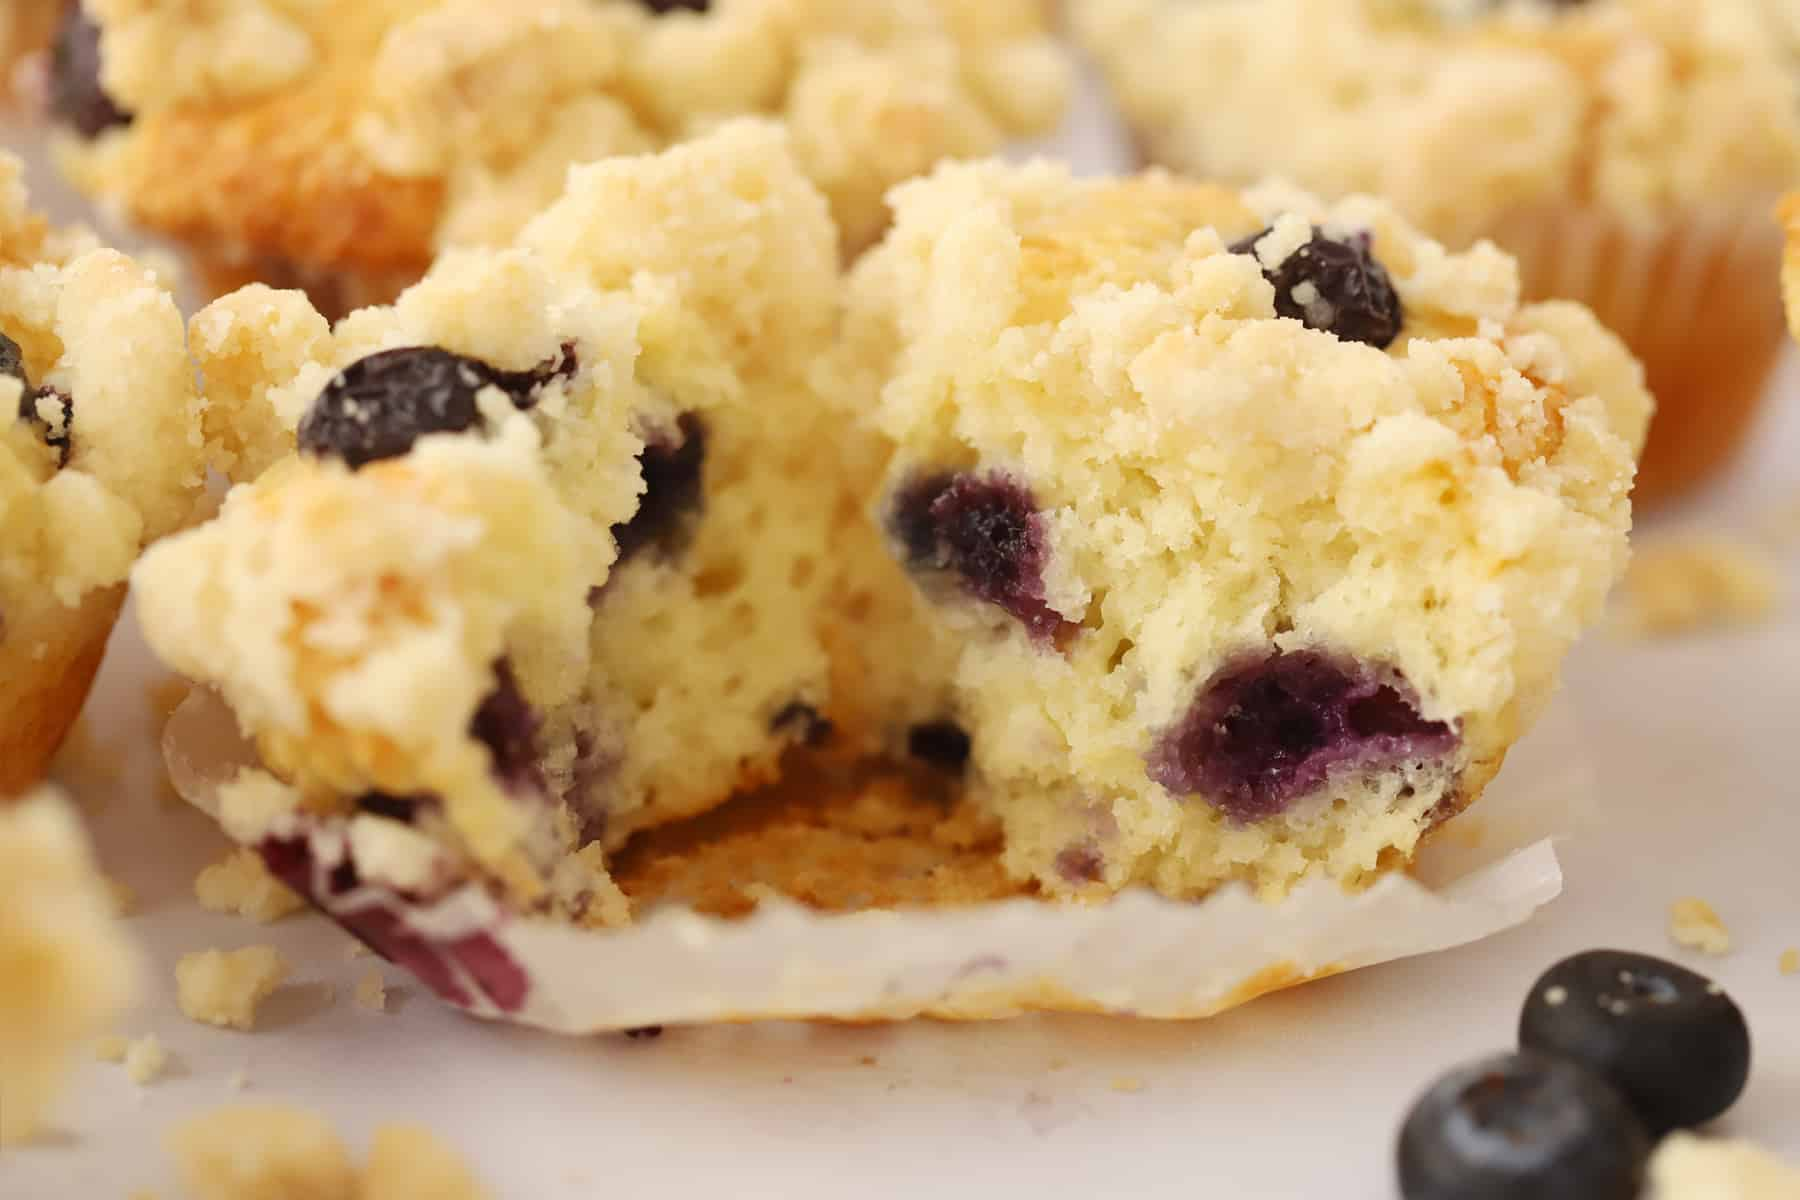 A lemon blueberry muffin broken in half ready to eat.